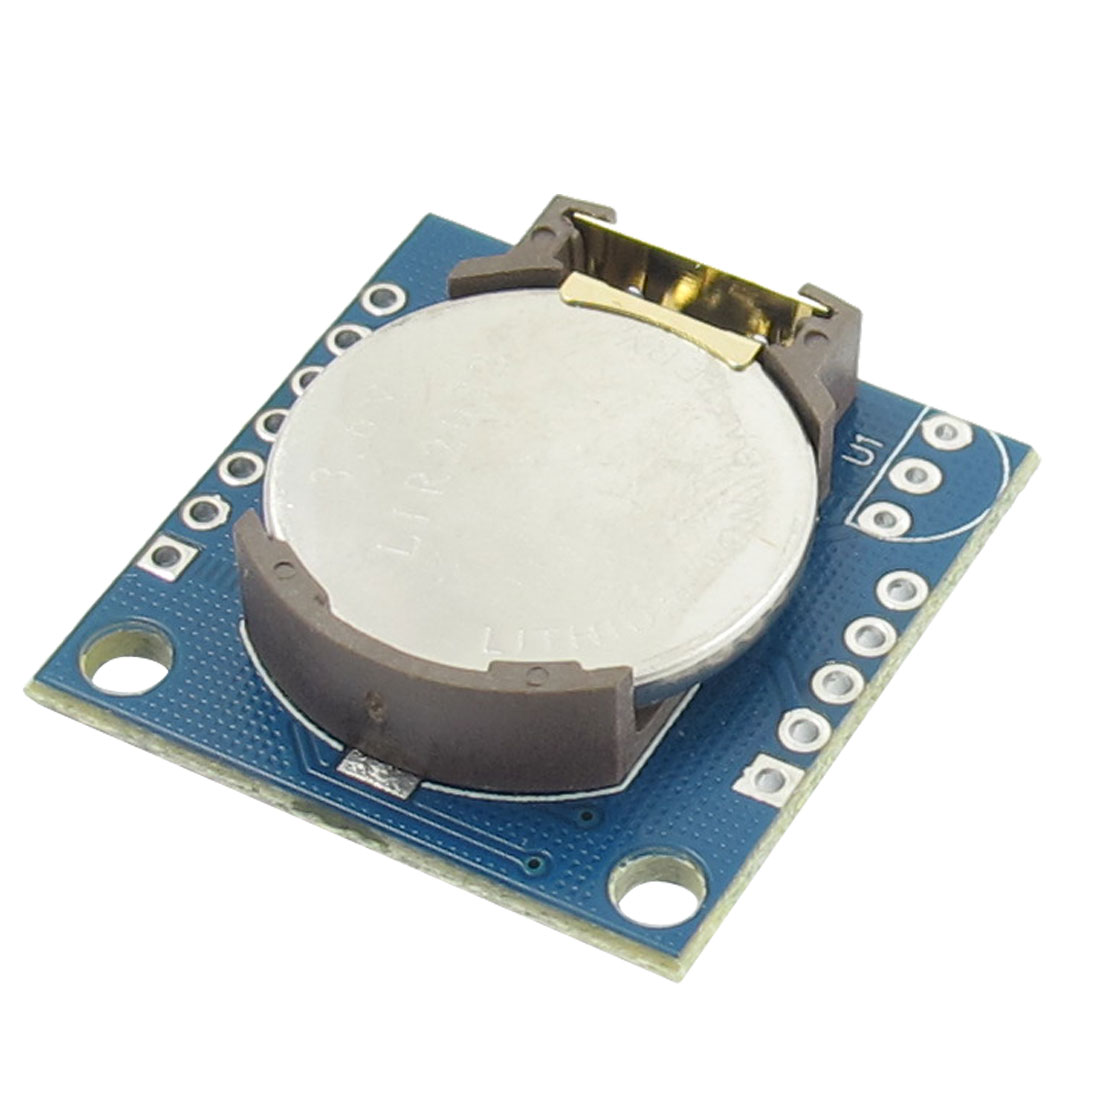 I2C RTC DS1307 AT24C32 Real Time Clock Module for MCU AVR PIC 51 ARM